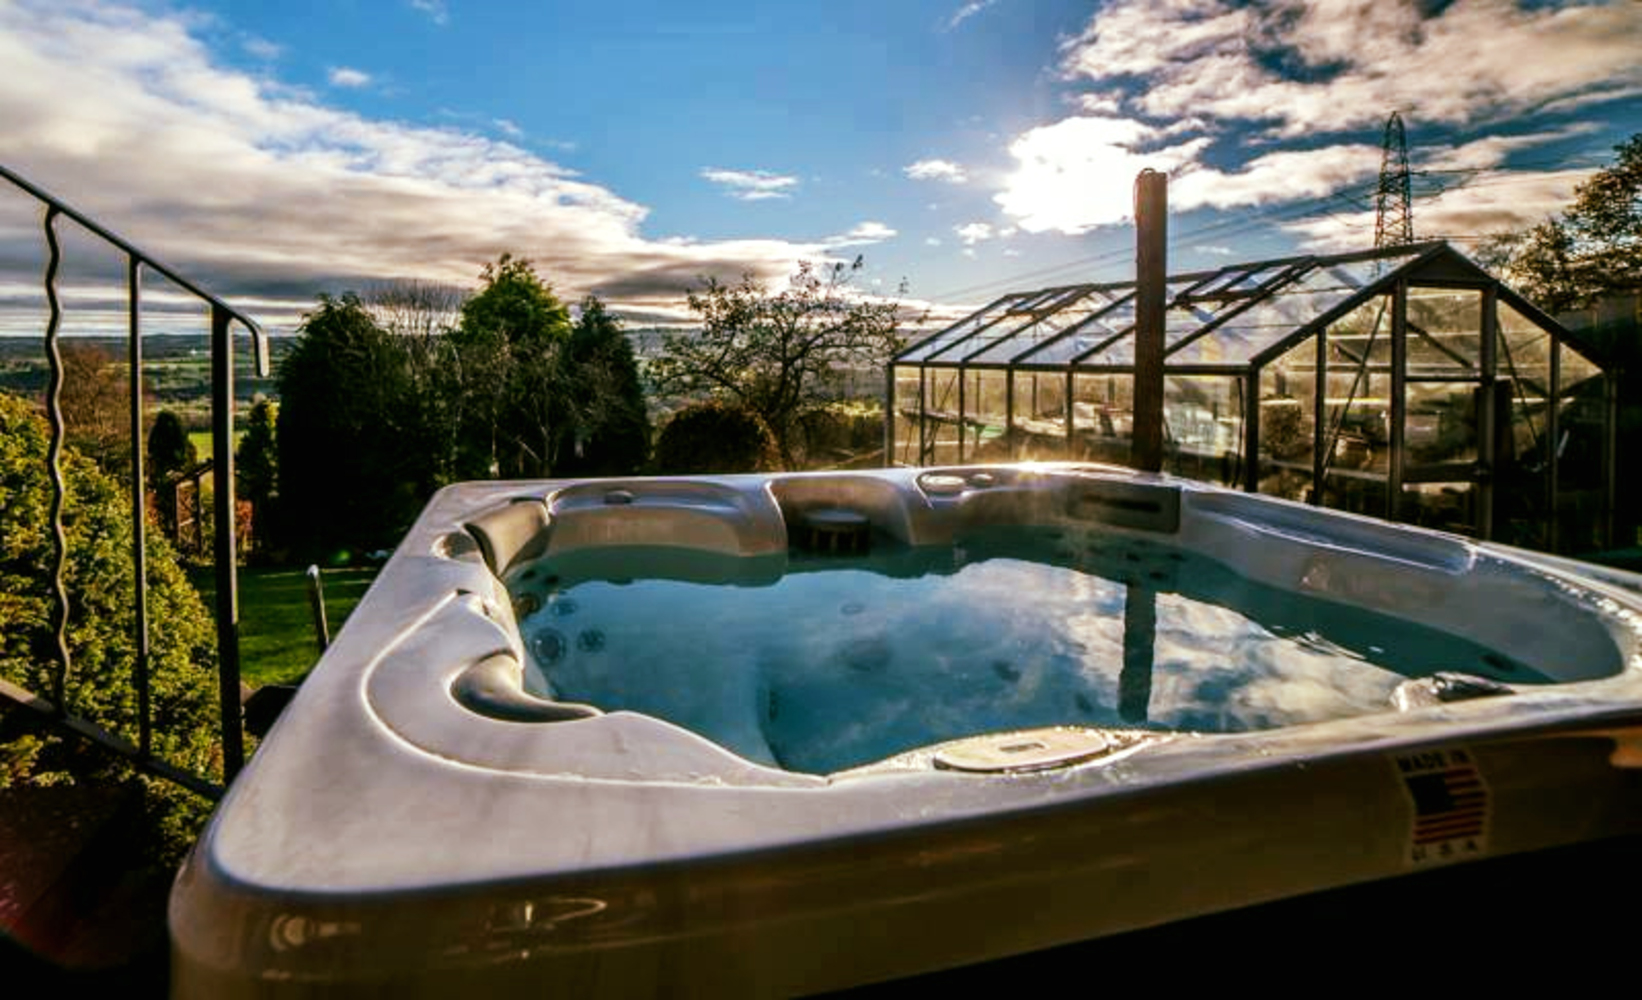 Jacuzzi Pool Installation Home Hot Tubs Swim Spas Swimming Pools And Hot Tub Servicing